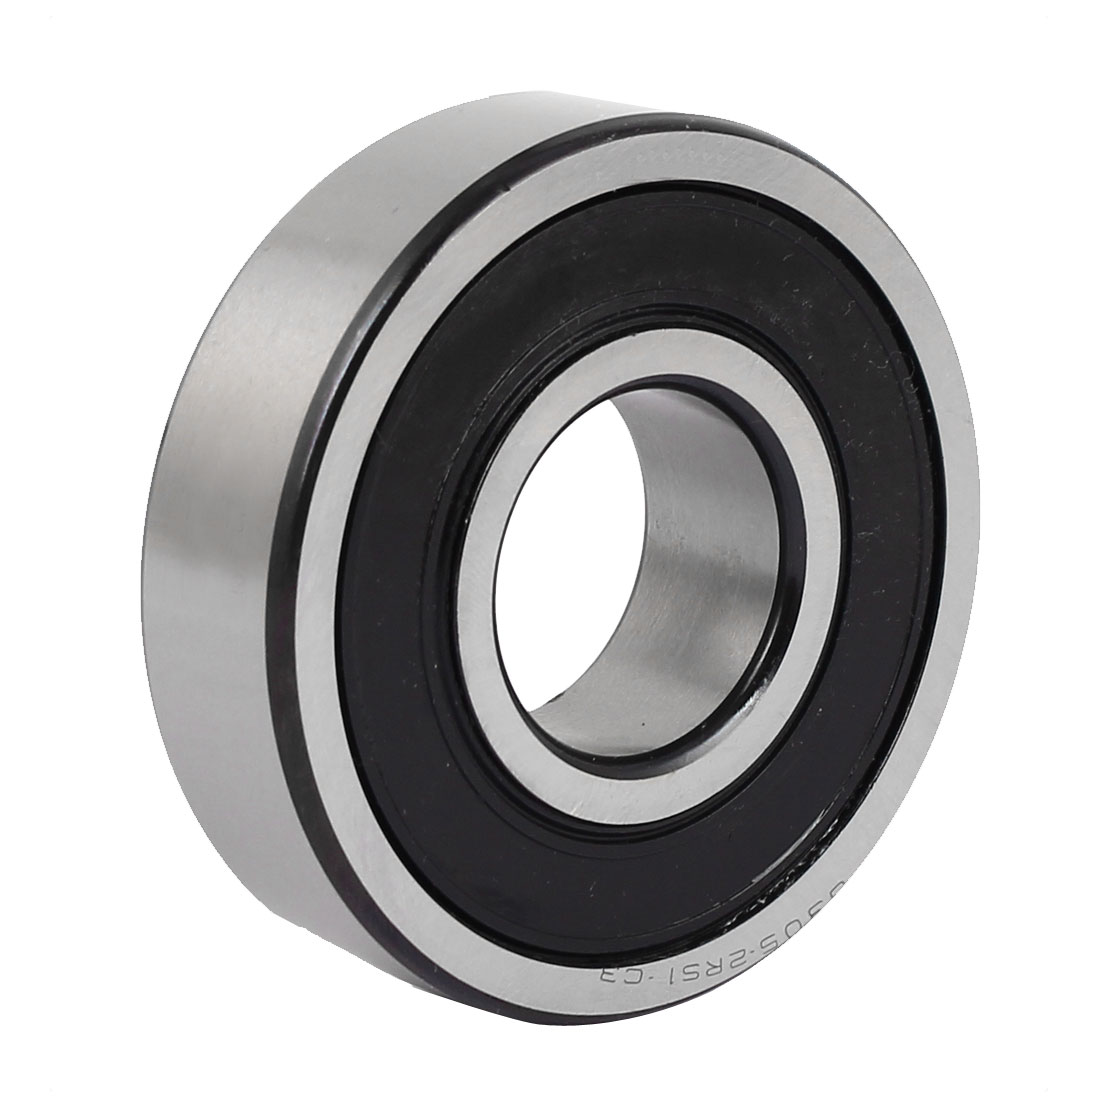 2RS6305 62mmx25mmx17mm Single Row Deep Groove Shielded Ball Bearing